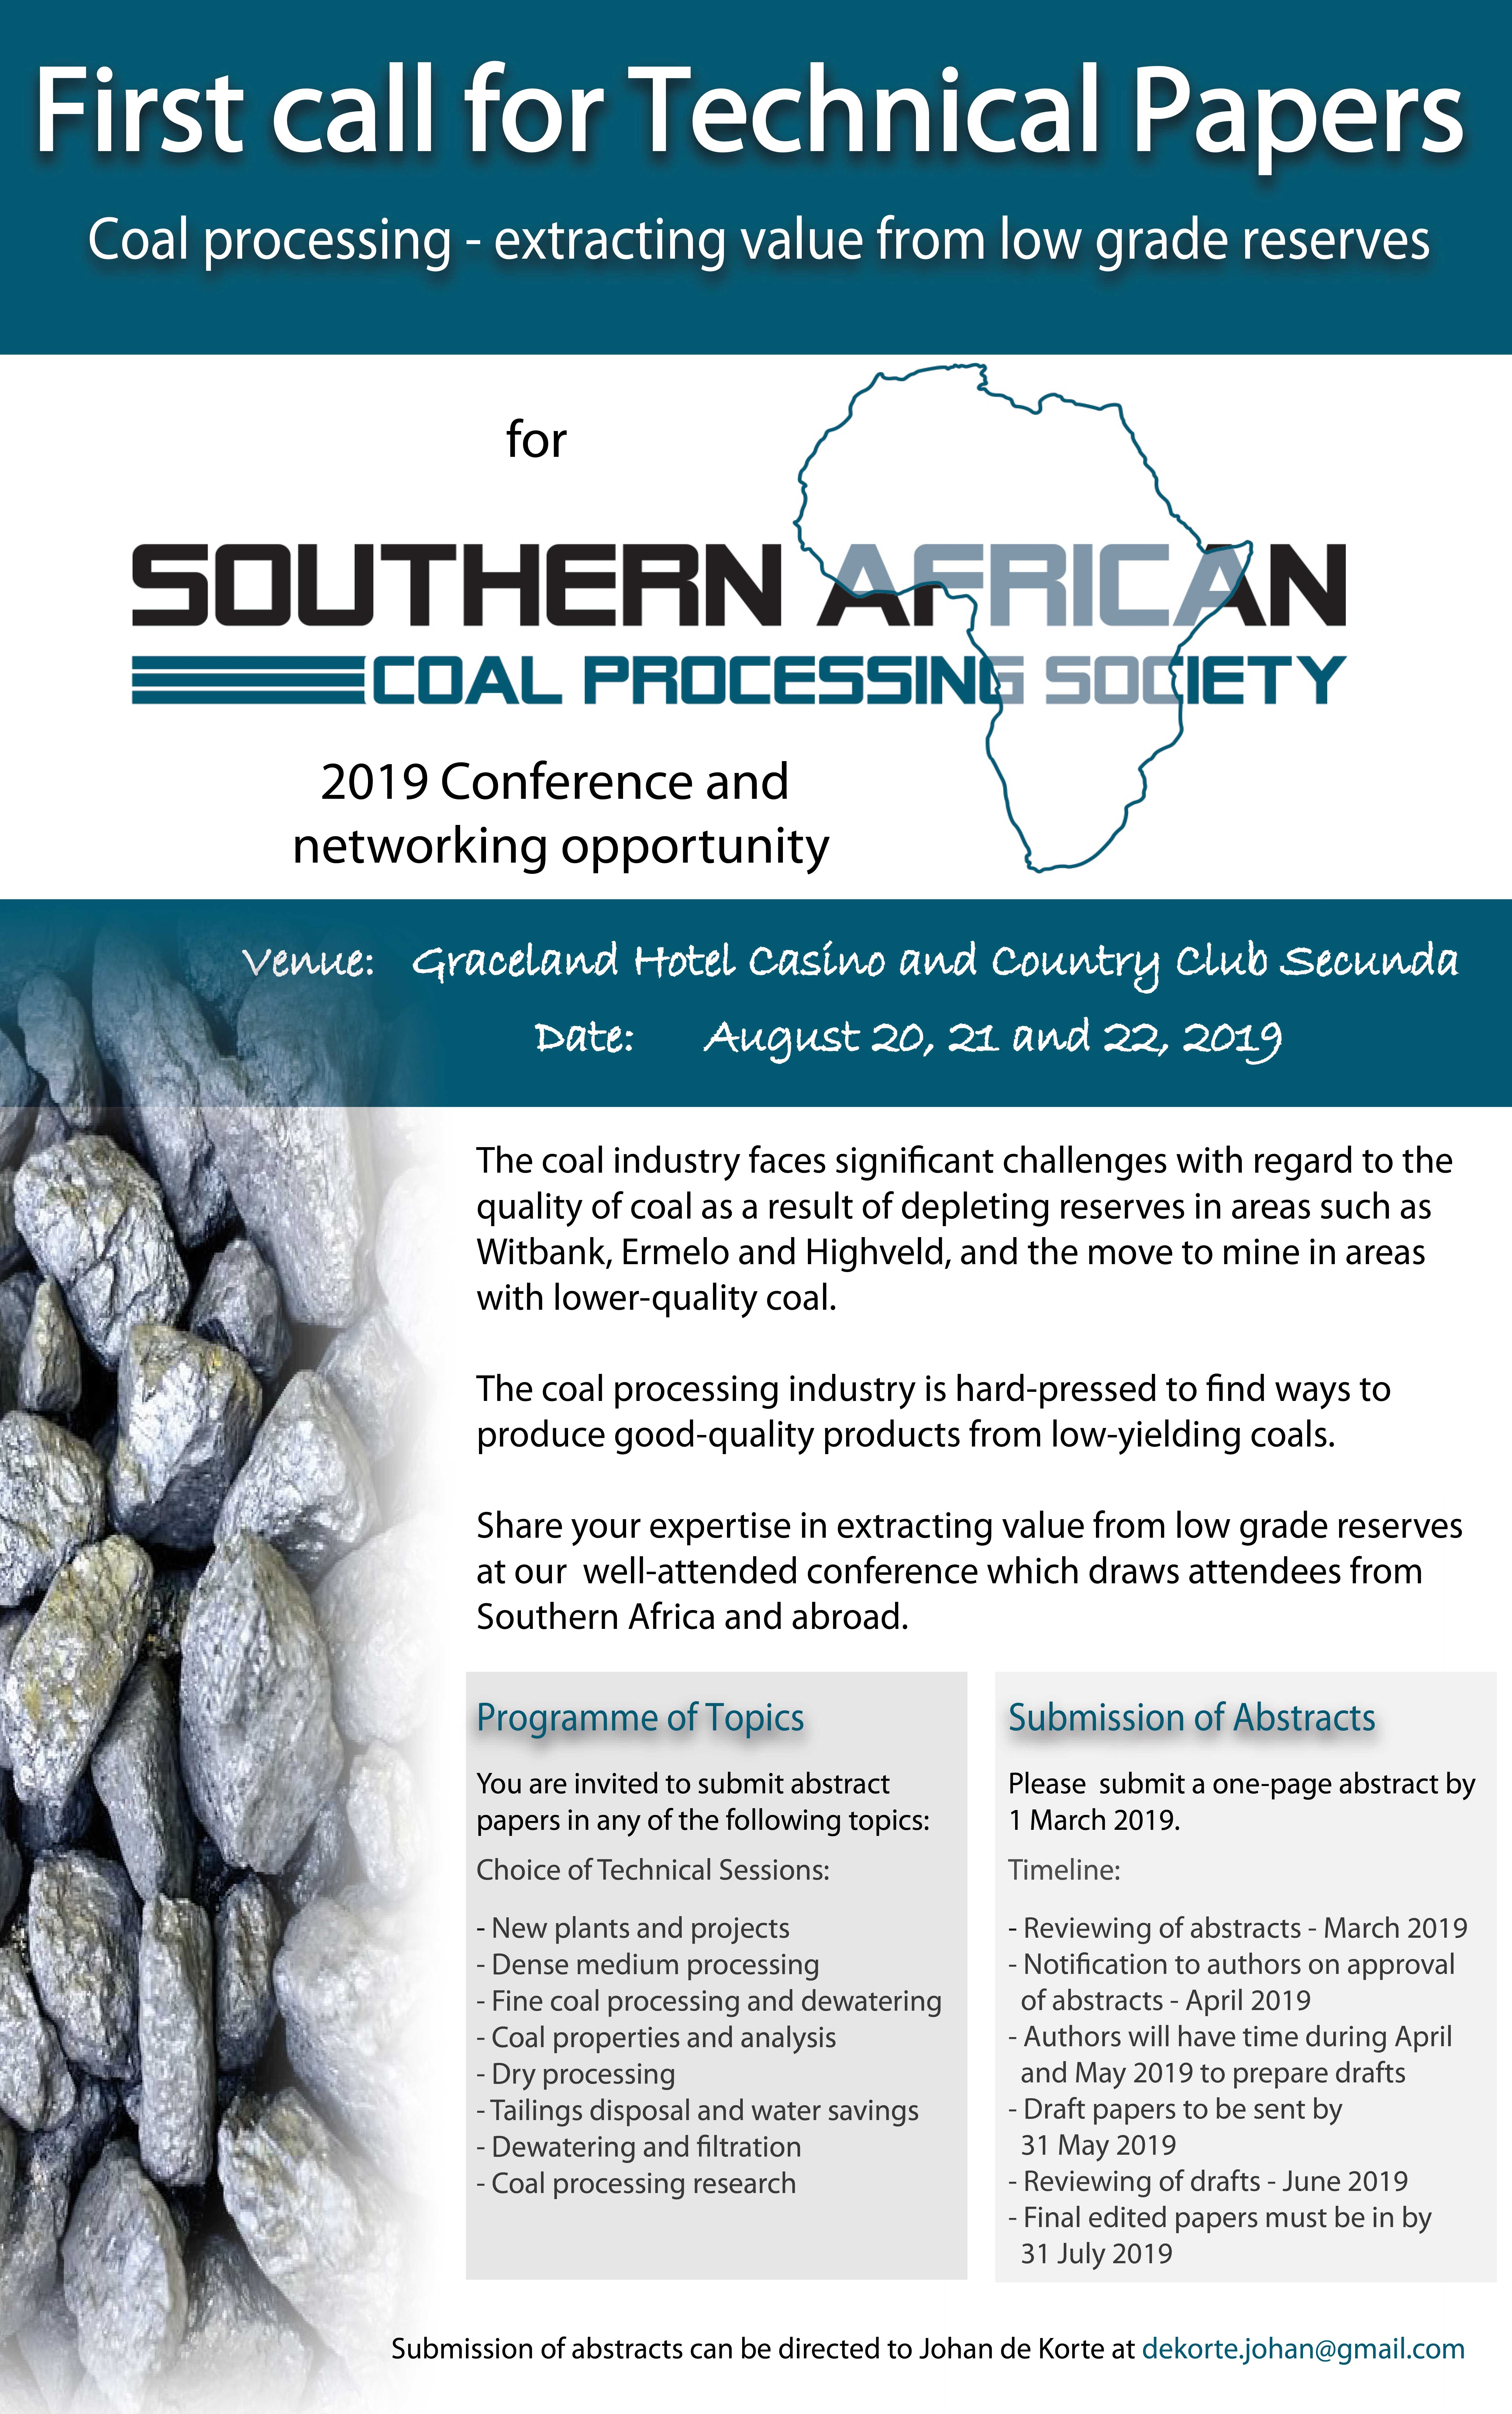 The Southern African Coal Processing Society